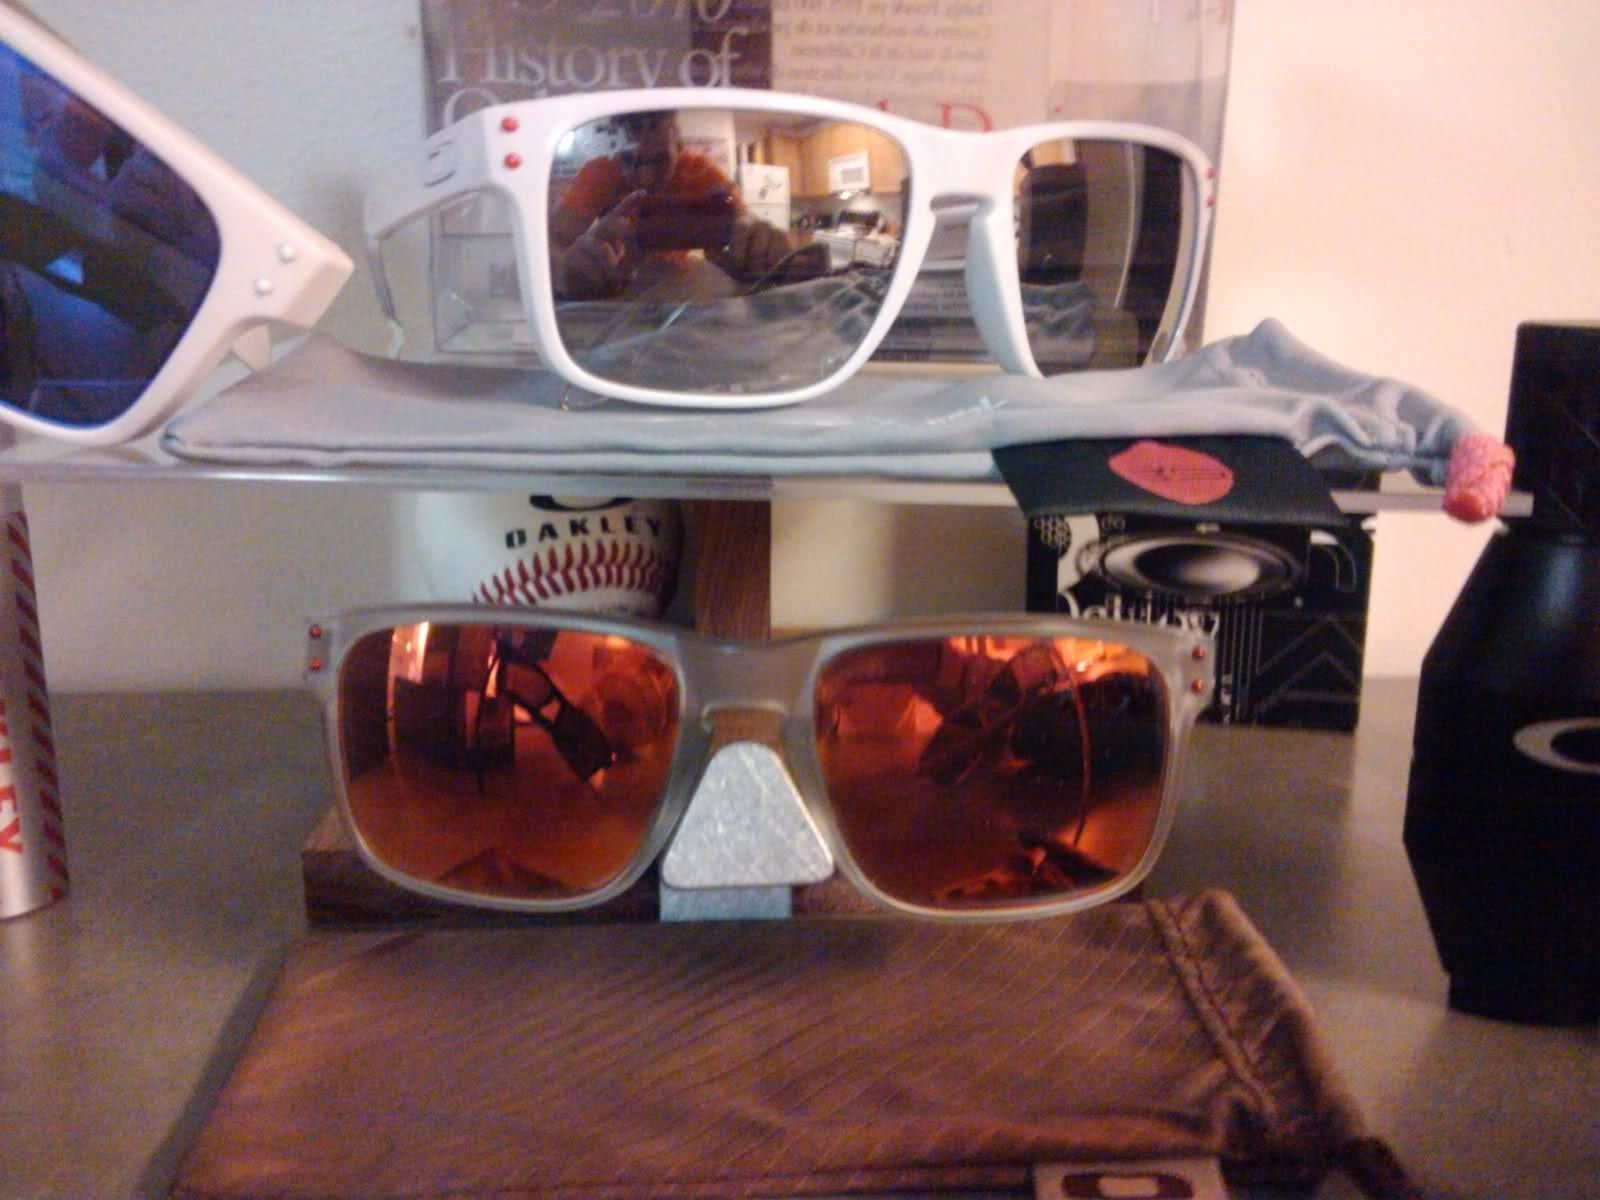 Its No Pond Of Frogs, But I Do Have A Whole Brook Of Sunnies! - mwr7rb.jpg